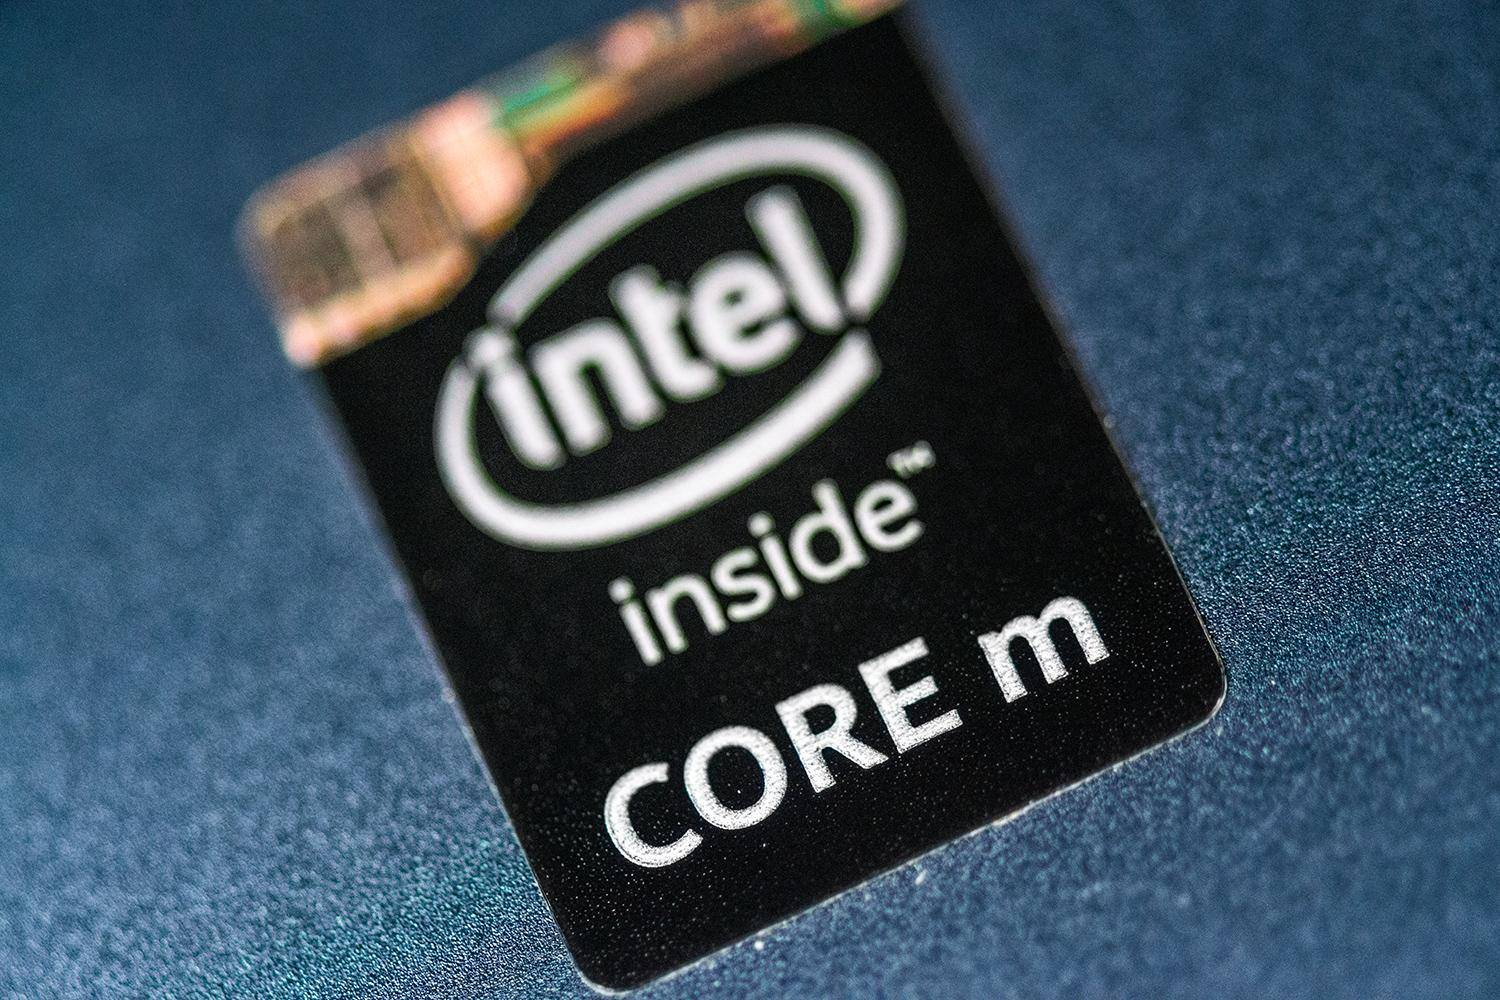 intel-core-m-sticker-1500x1000